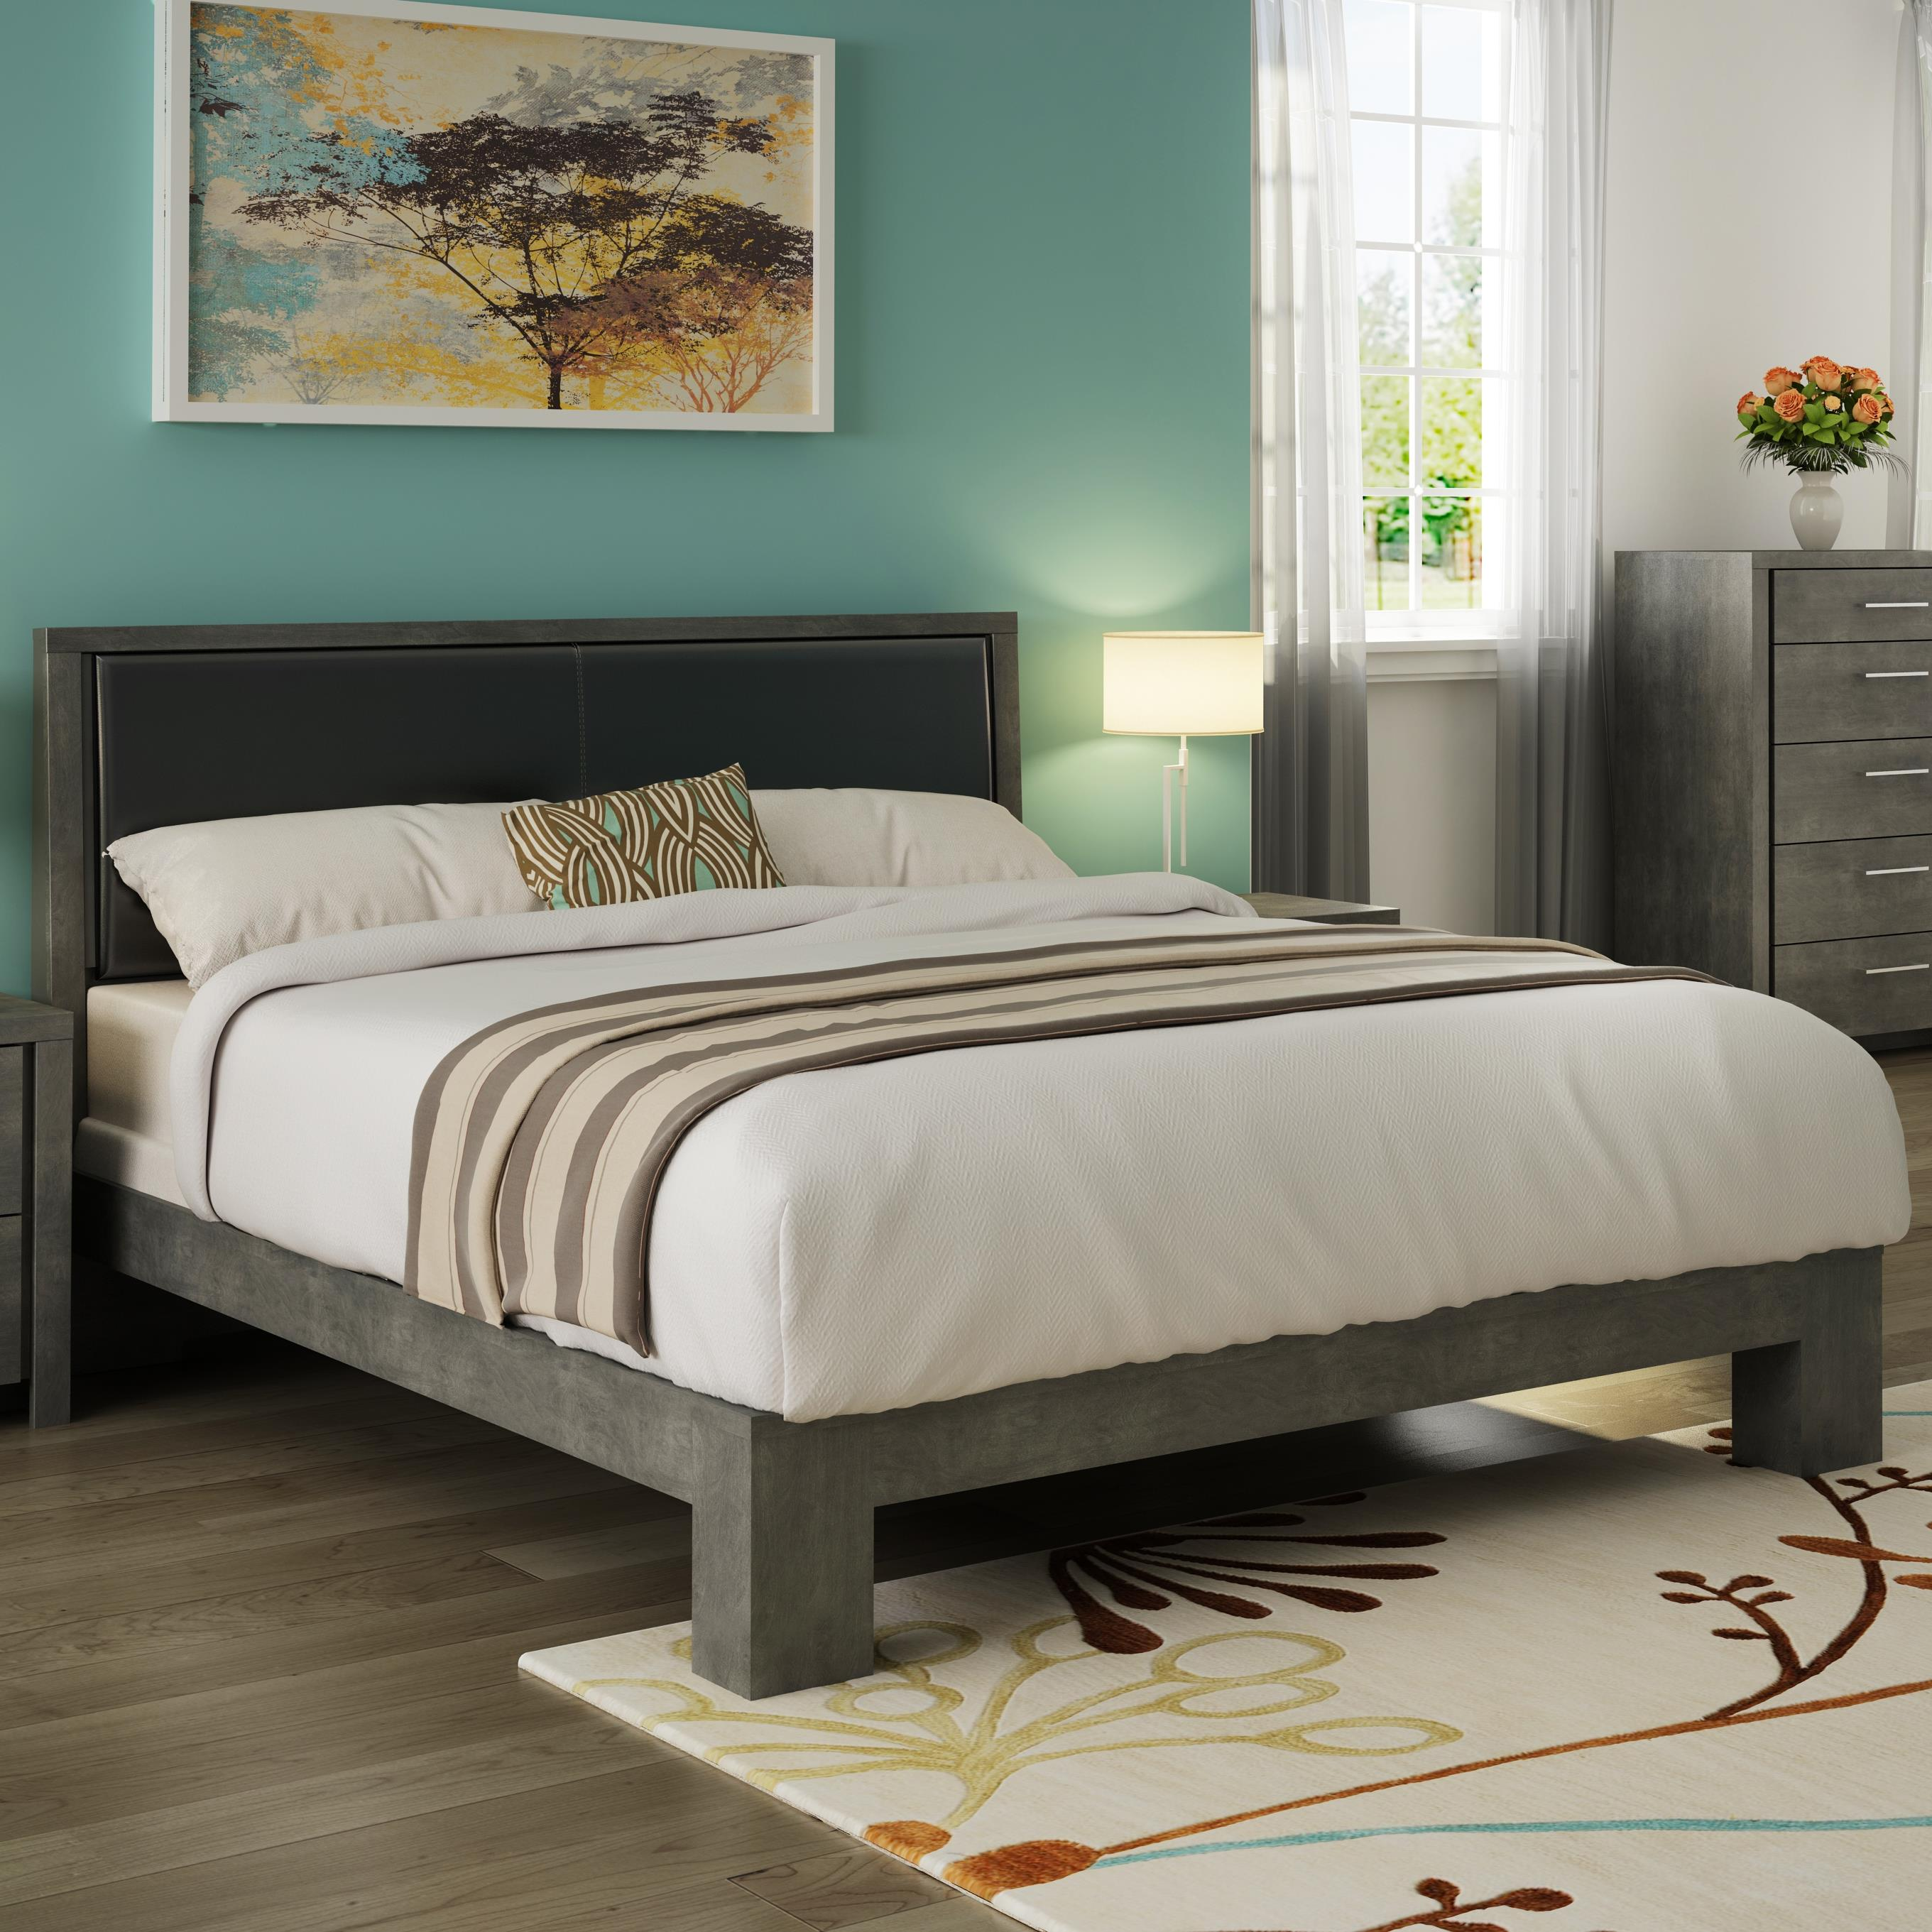 fabric ships product to bed upholstered alder platform hillary overstock home eabe clay grey canada garden mildred